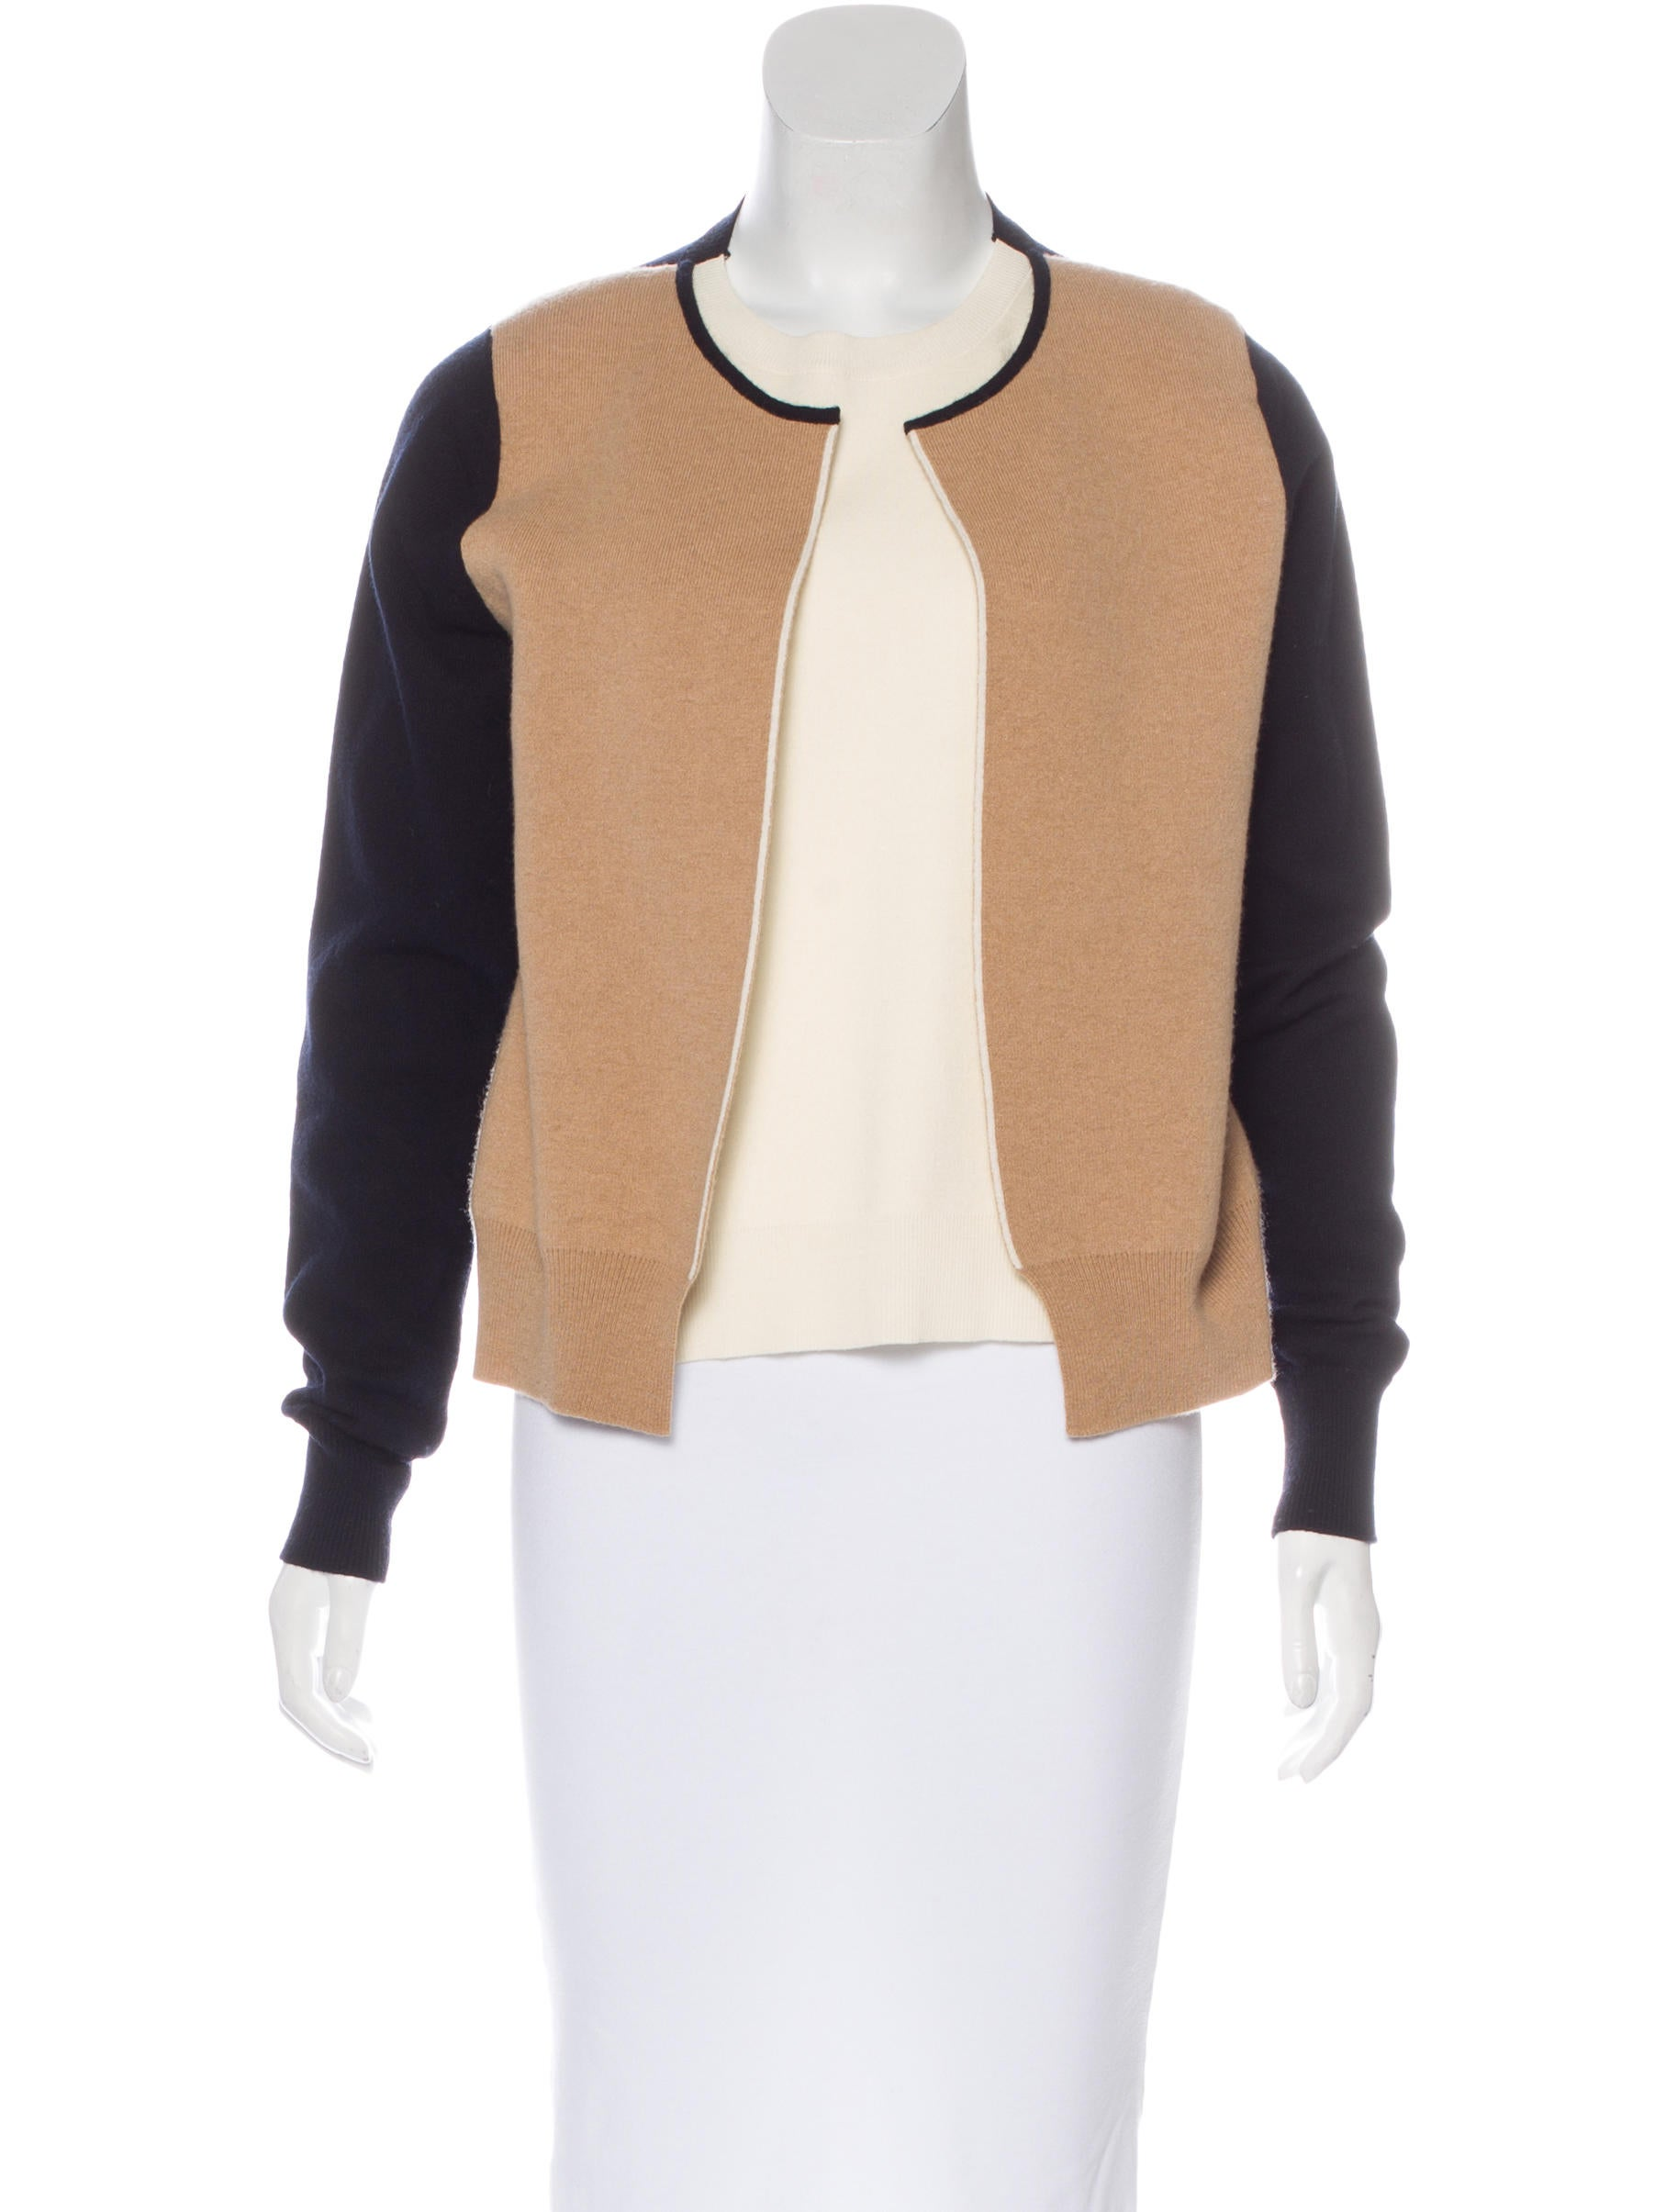 Free shipping and returns on Women's Cashmere & Cashmere Blend Sweaters at erawtoir.ga